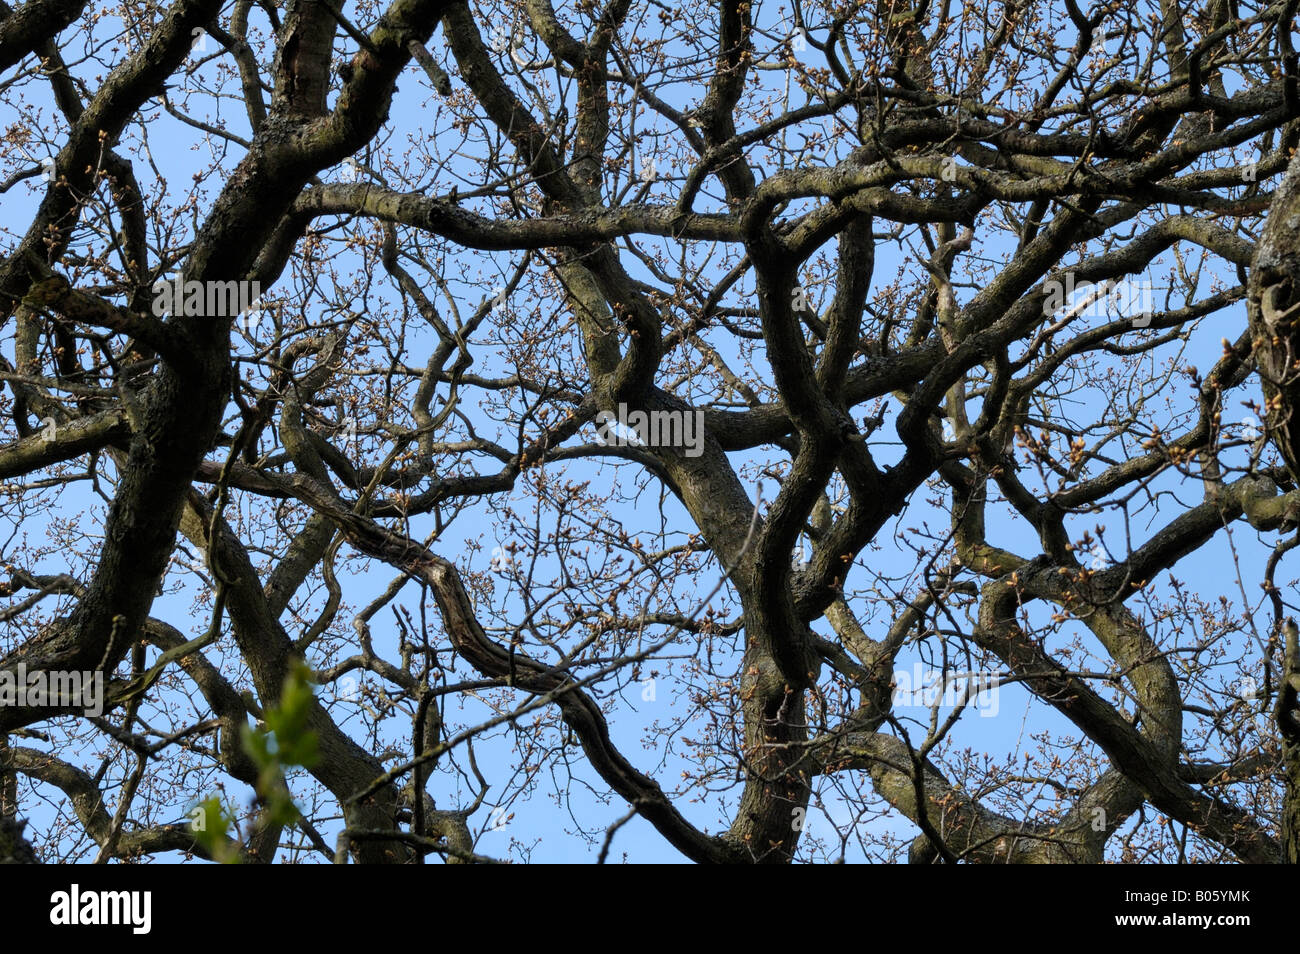 Tree boughs against sky - Stock Image